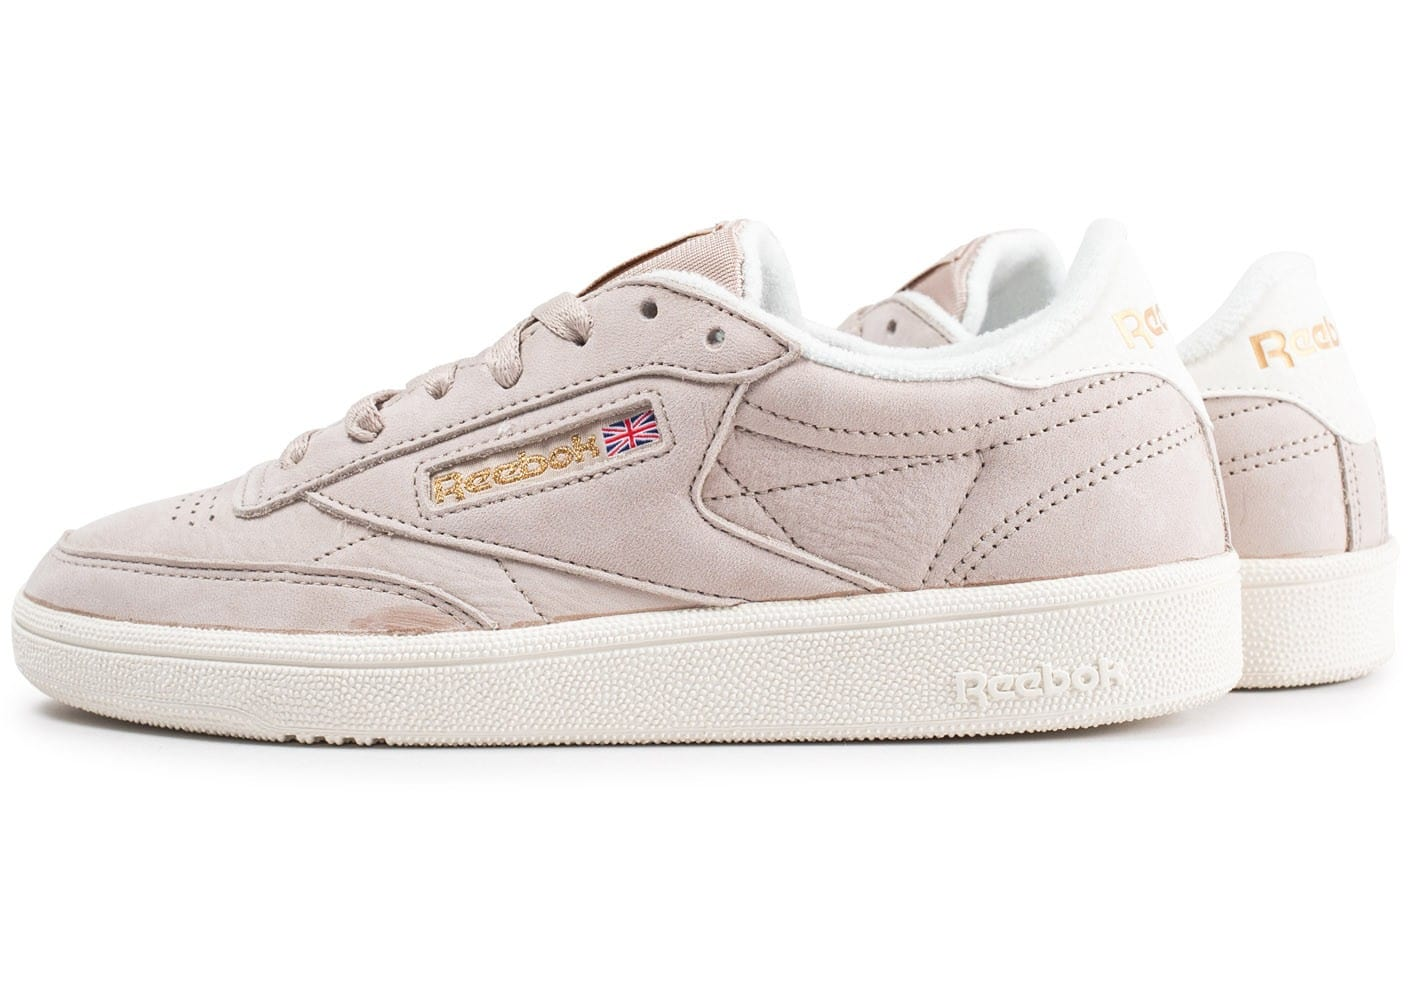 reebok club c 85 vintage beige chaussures baskets femme. Black Bedroom Furniture Sets. Home Design Ideas